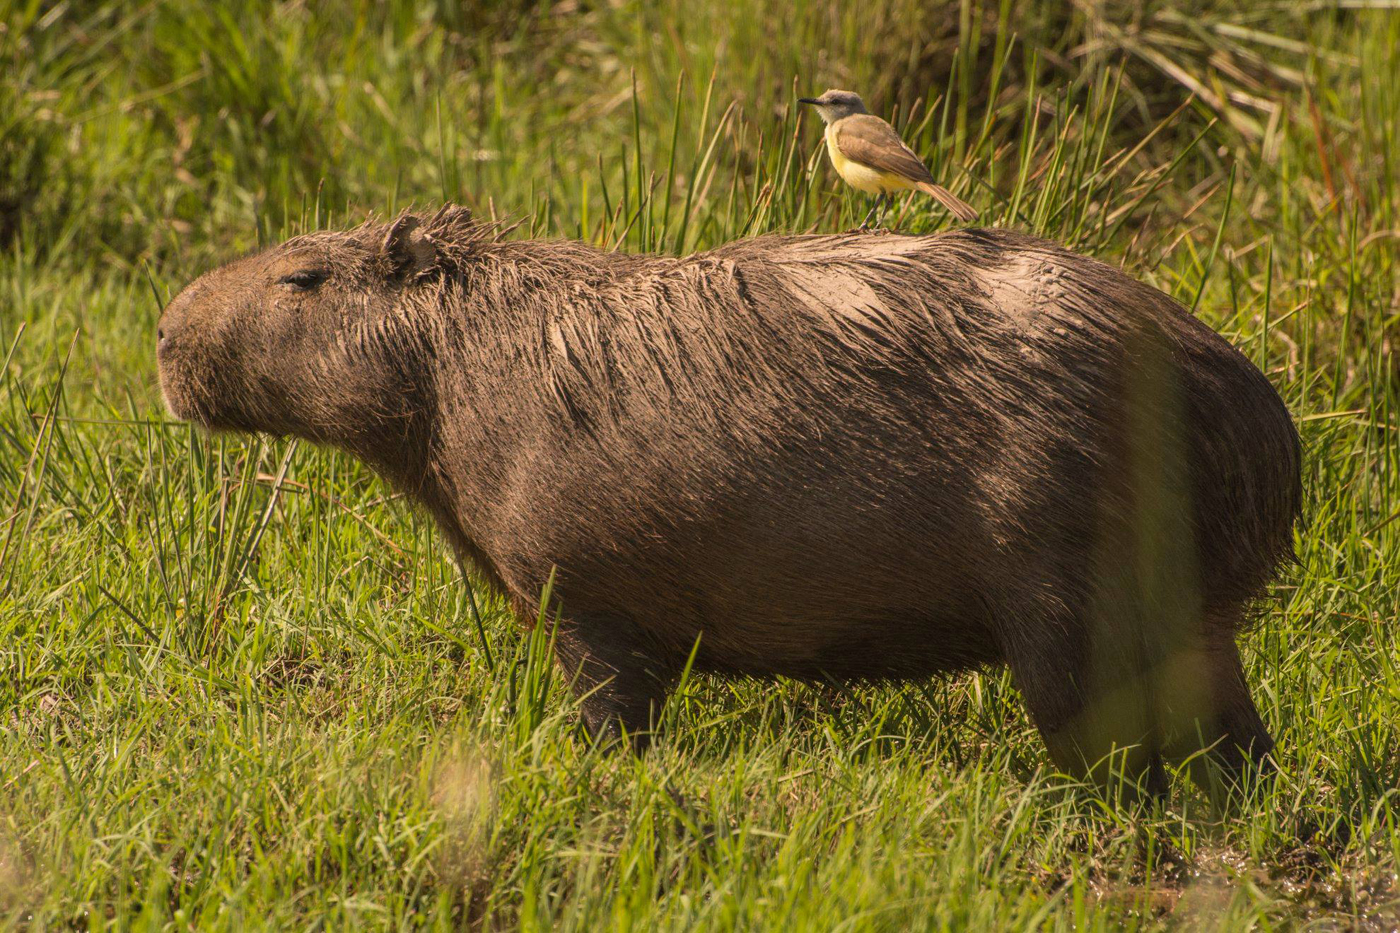 Capybara with bird perched on its back